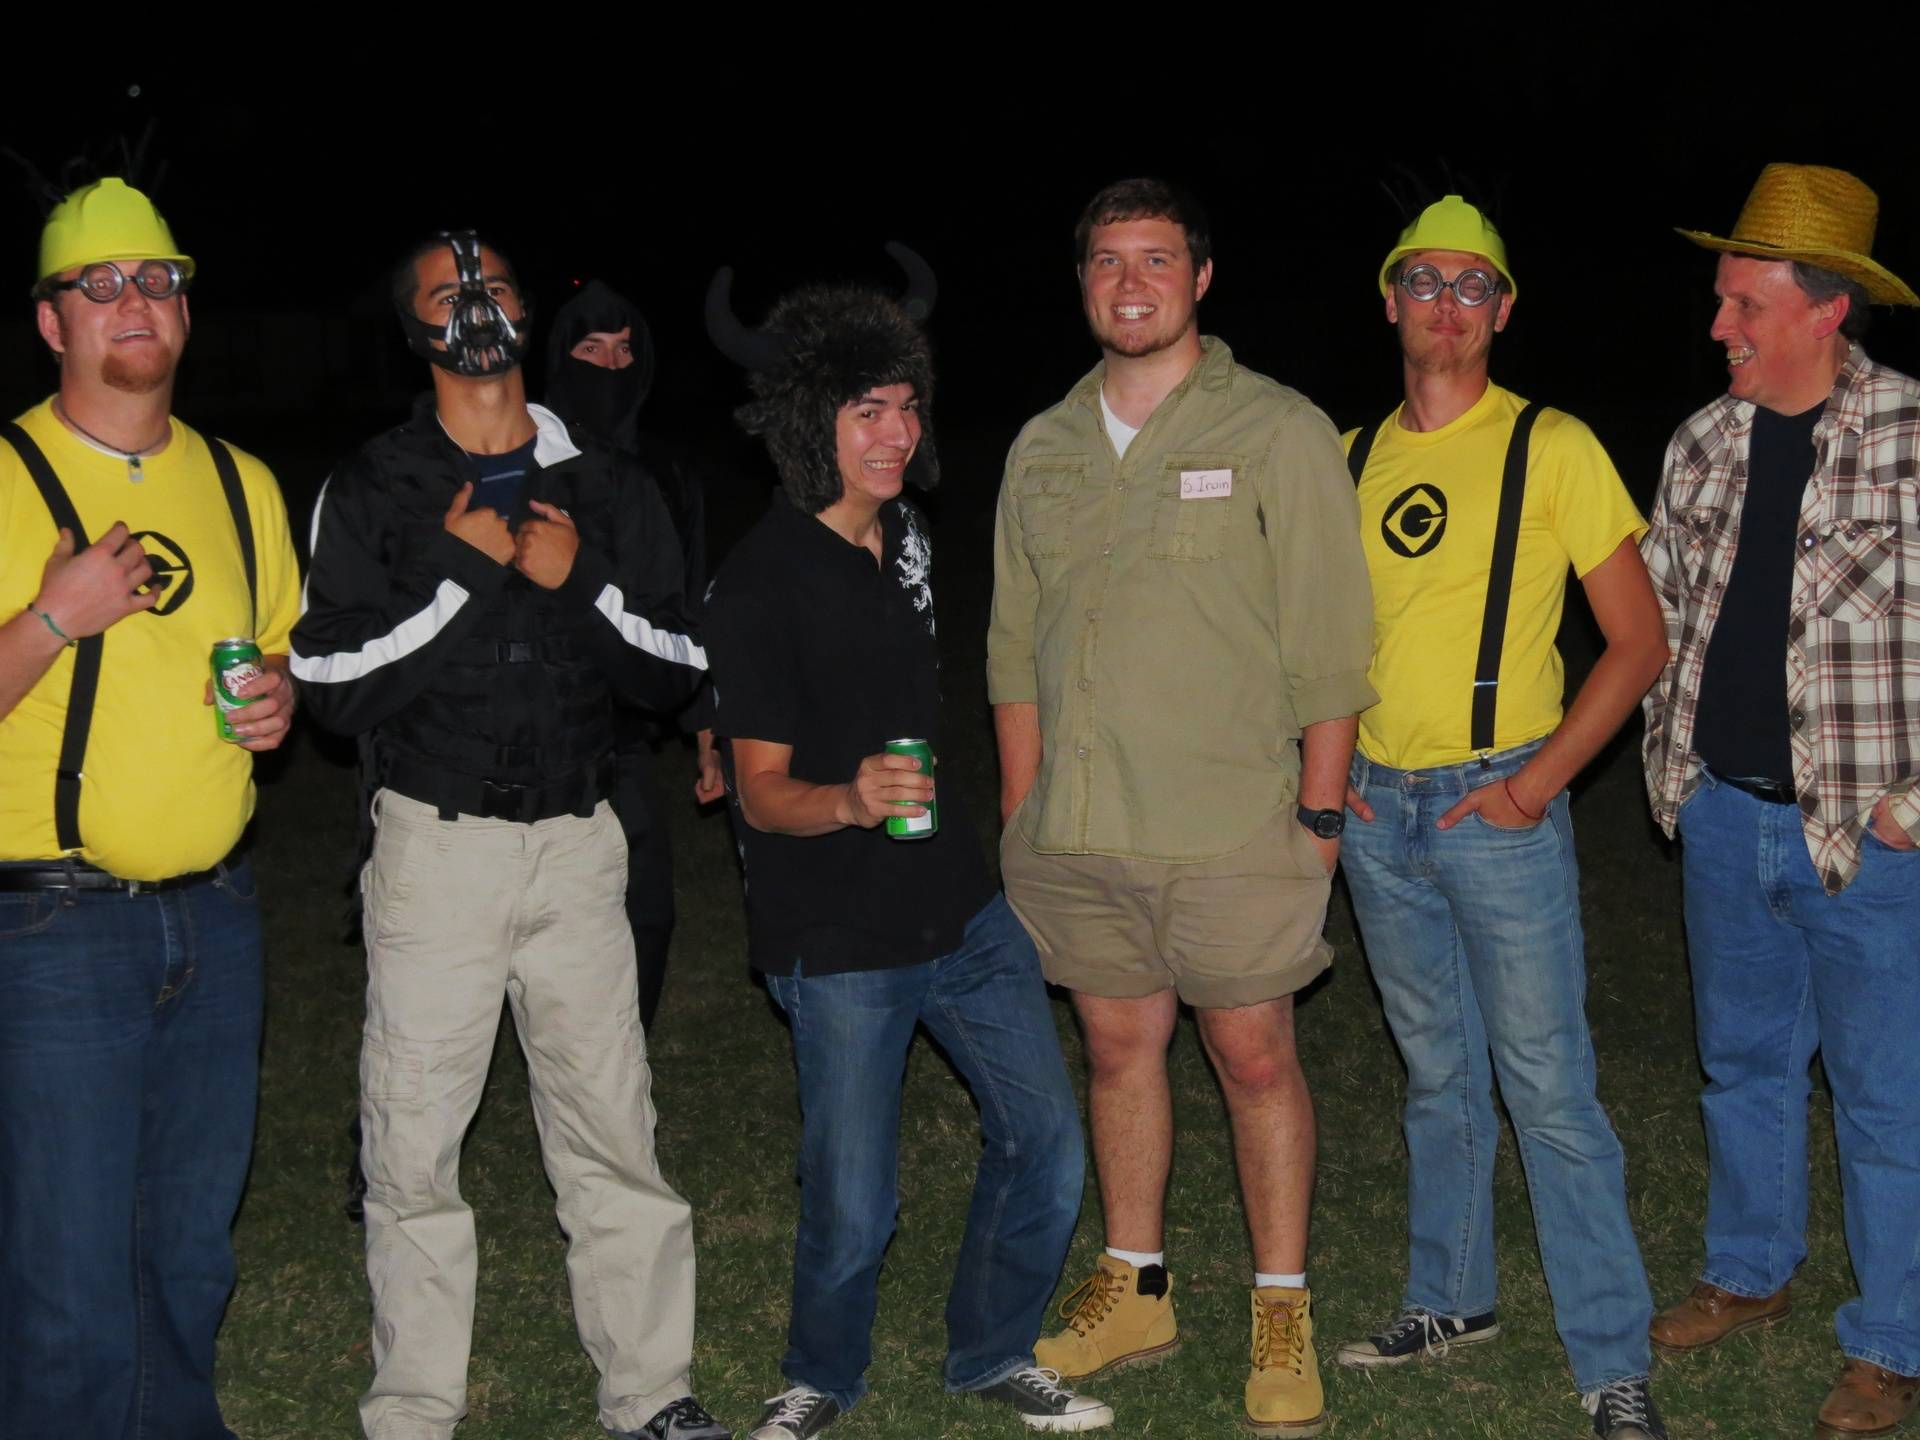 College Costume Party 2012